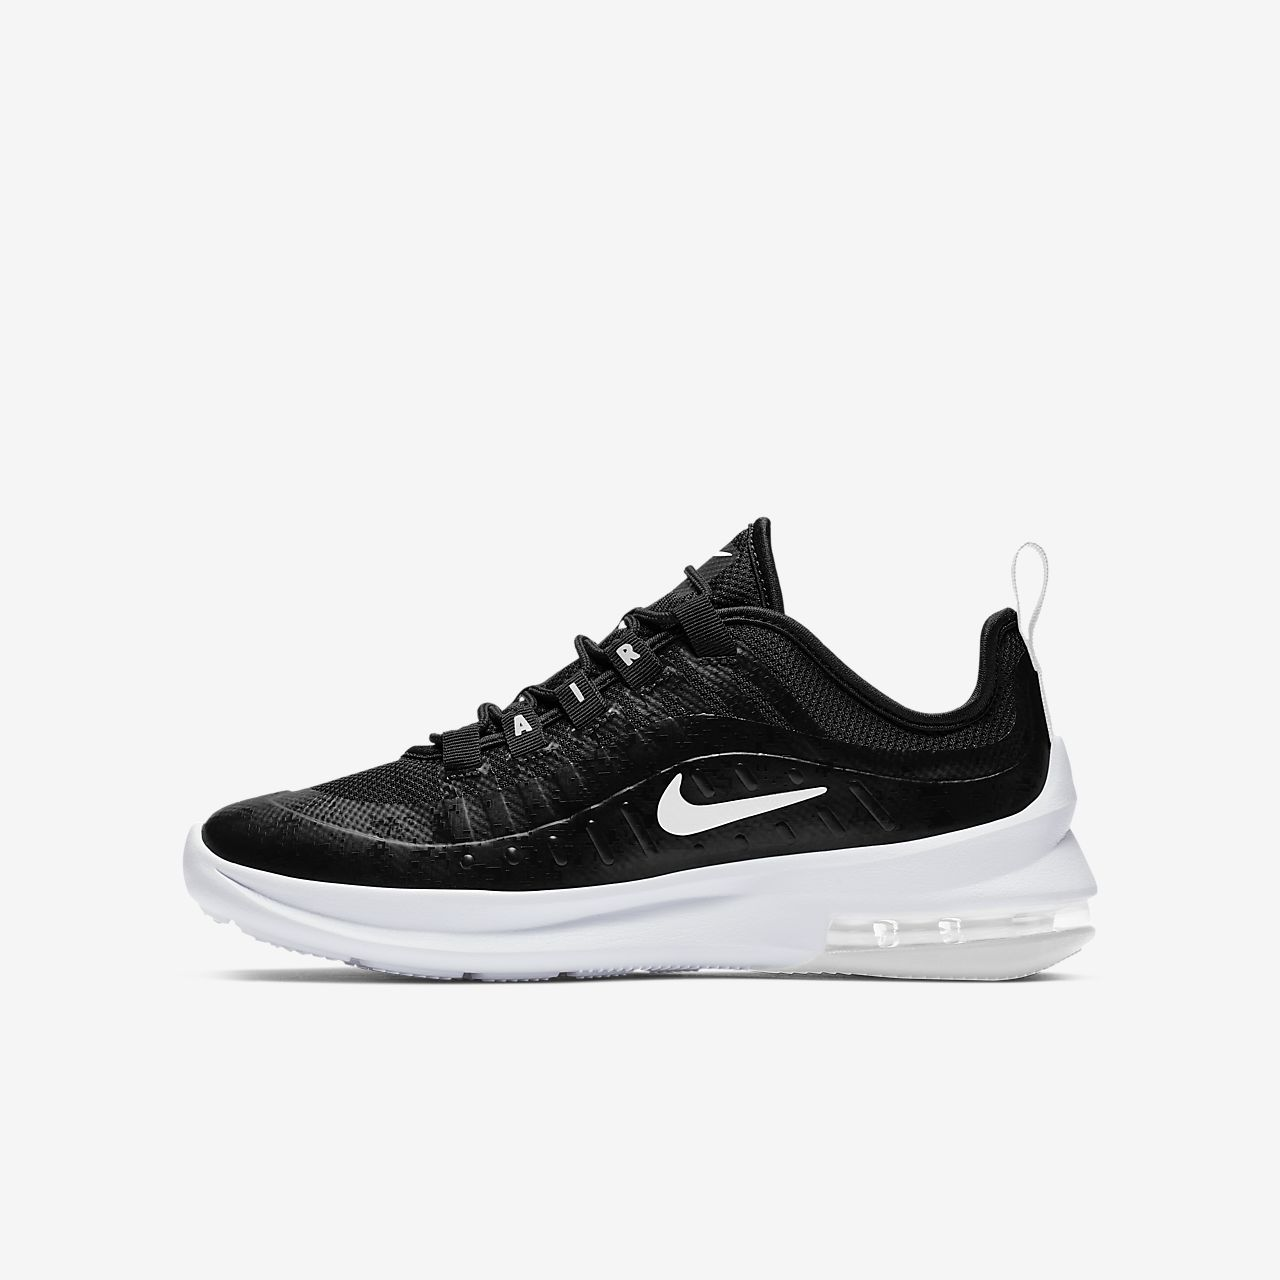 Axis Ragazzi Max Nike Scarpa It Air w4tYxO